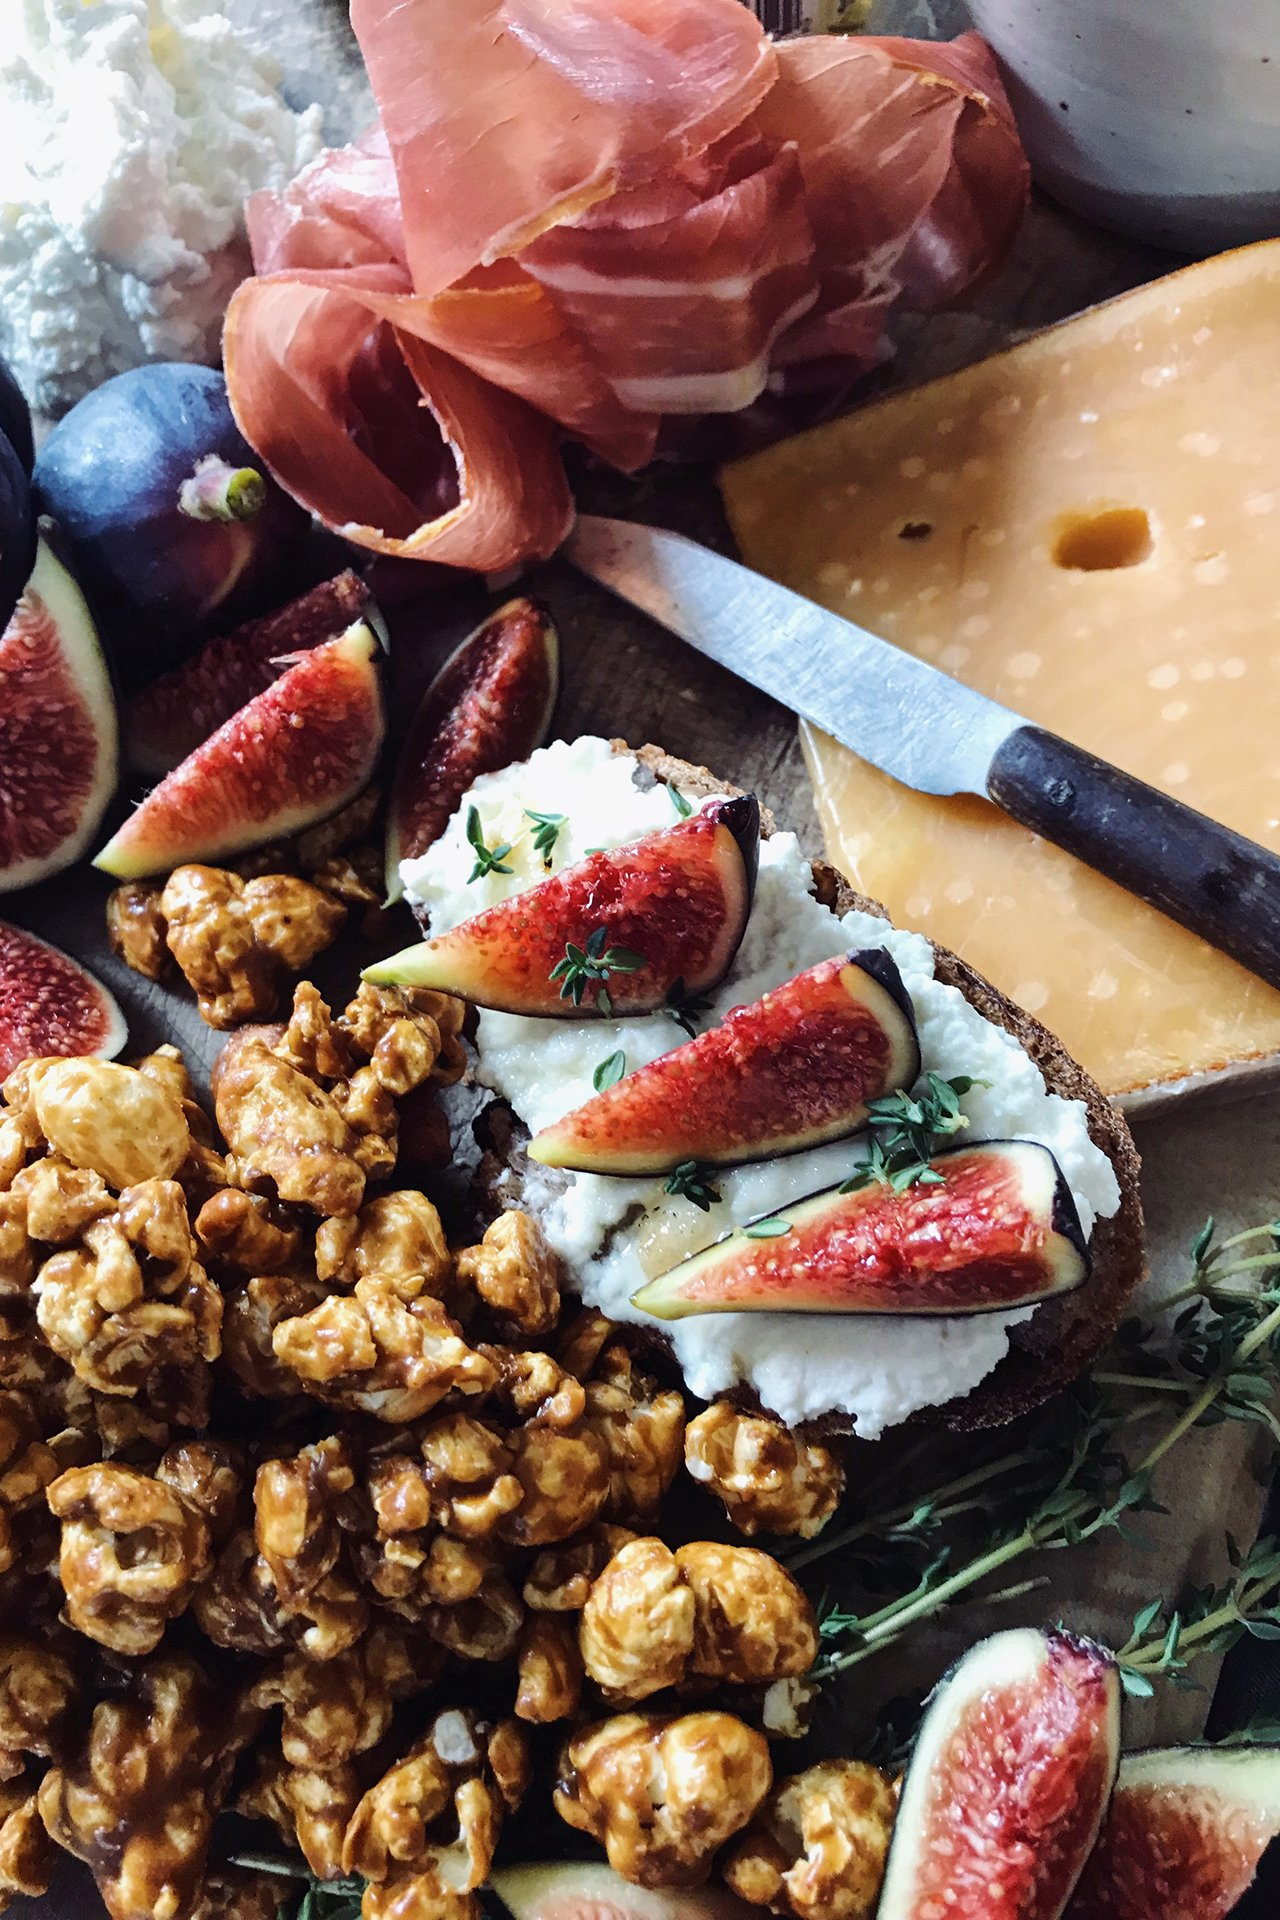 Cheese platter with almonds and figs.